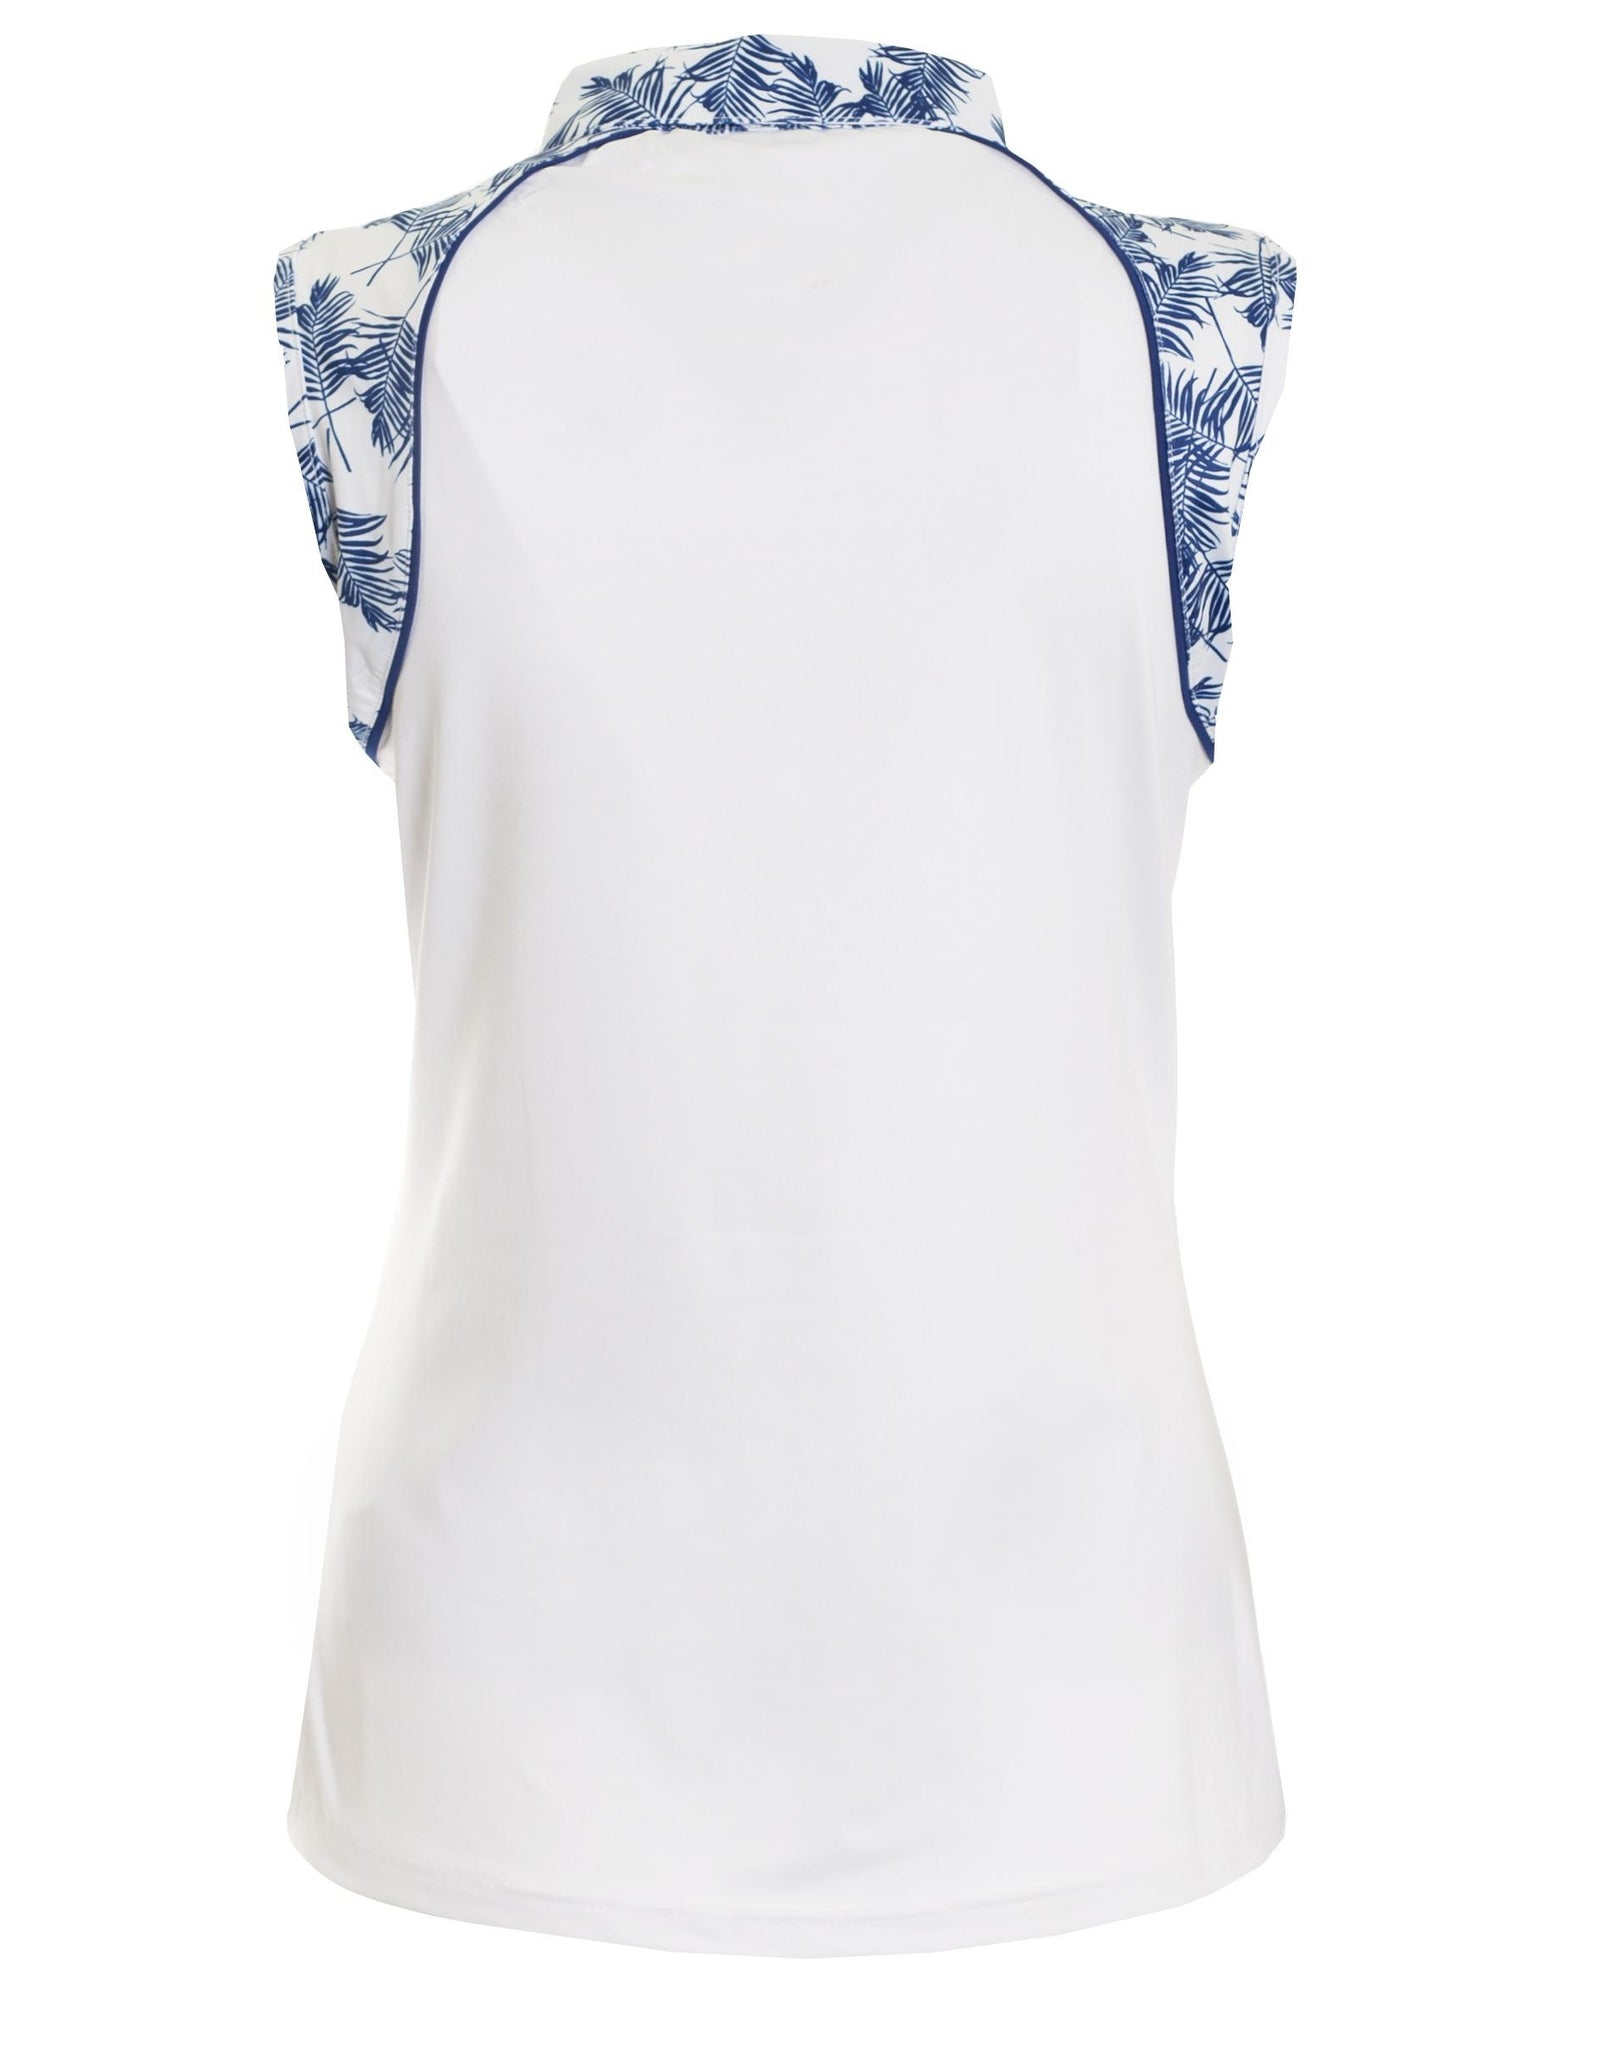 2ac944d24a159 ... Green Lamb Women s Piper Sleeveless Polo Shirt White   Ocean Blue  Product Image Back SG18679